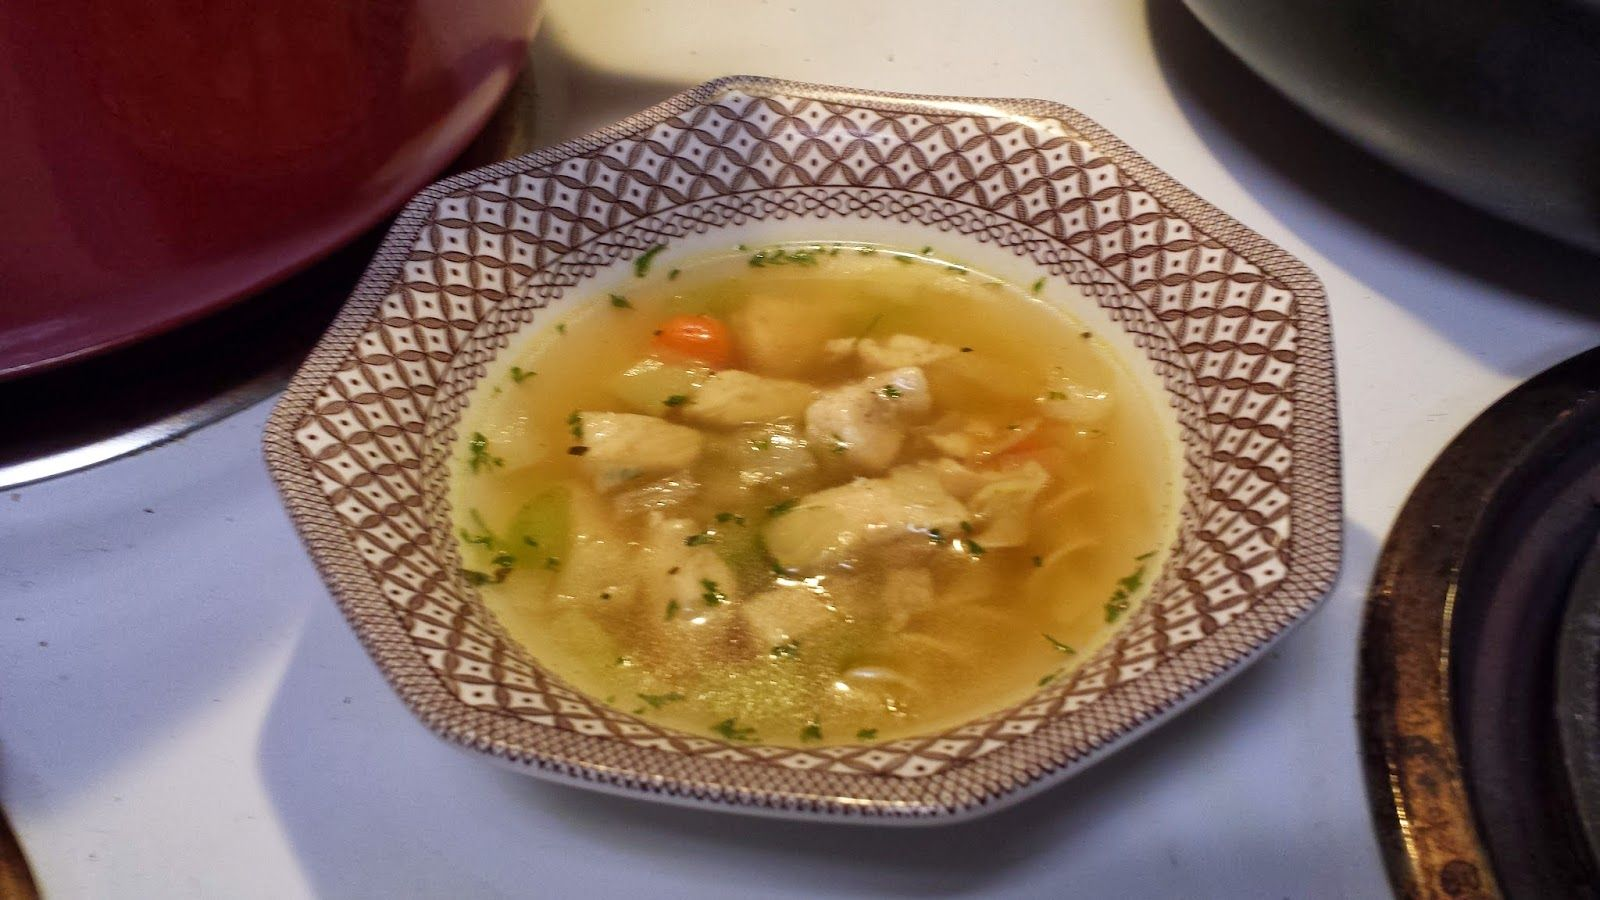 Comforting Chicken Noodle Soup // A delicious soup that tastes just like Grandma used to make. Ditch the canned soup and eat this nourishing and comforting chicken noodle soup.